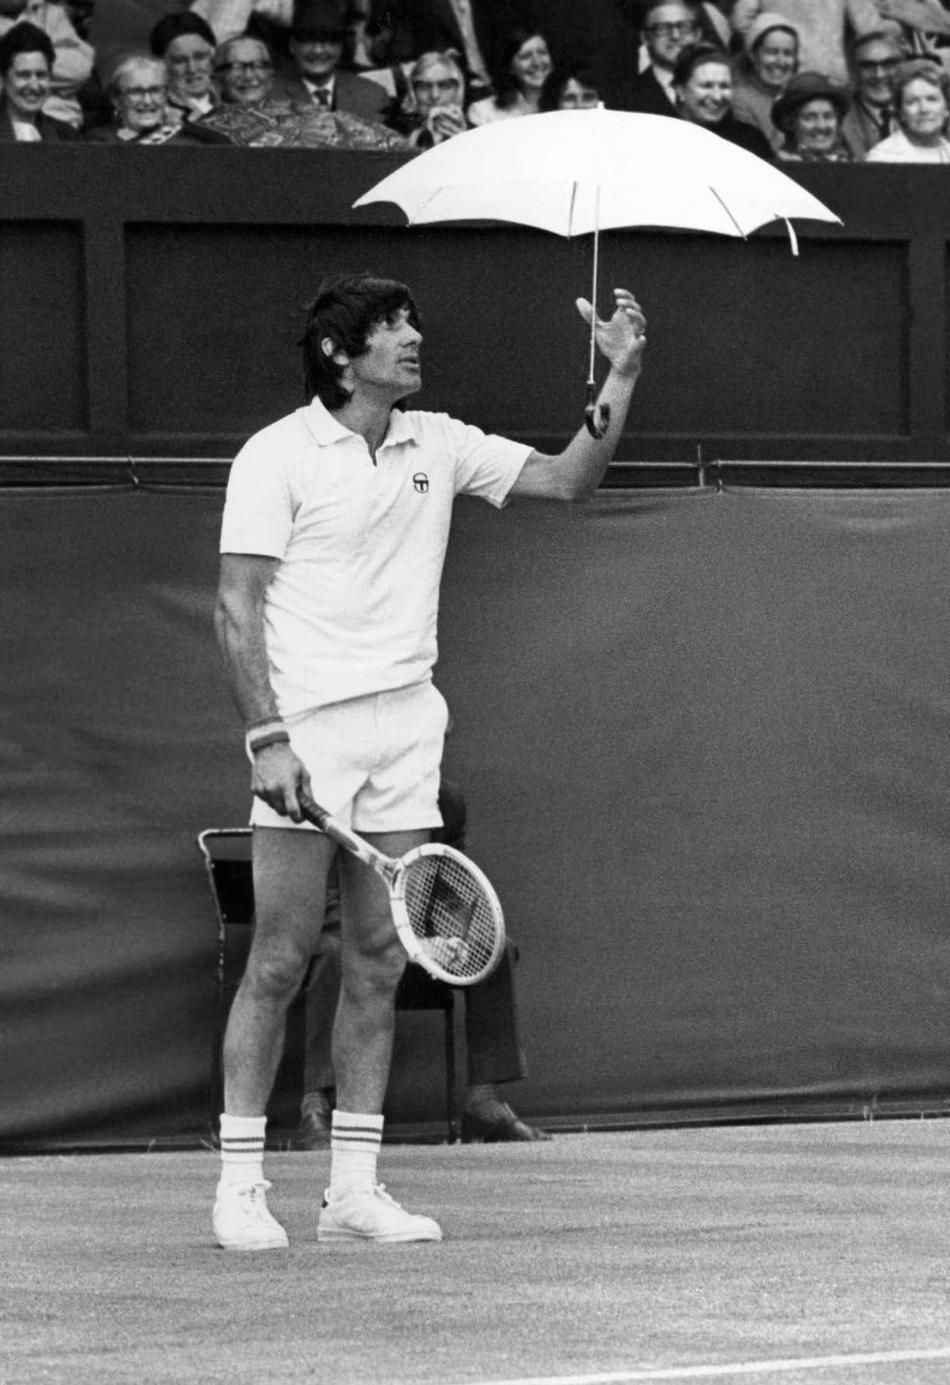 premium selection b05f1 63f99 Ilie Nastase - 1974 Wimbledon Mens Singles Round of 16. Neither the  umbrella nor the clowning did Nastase any good. He lost to Dick Stockton  5-7 6-4 6-3 ...